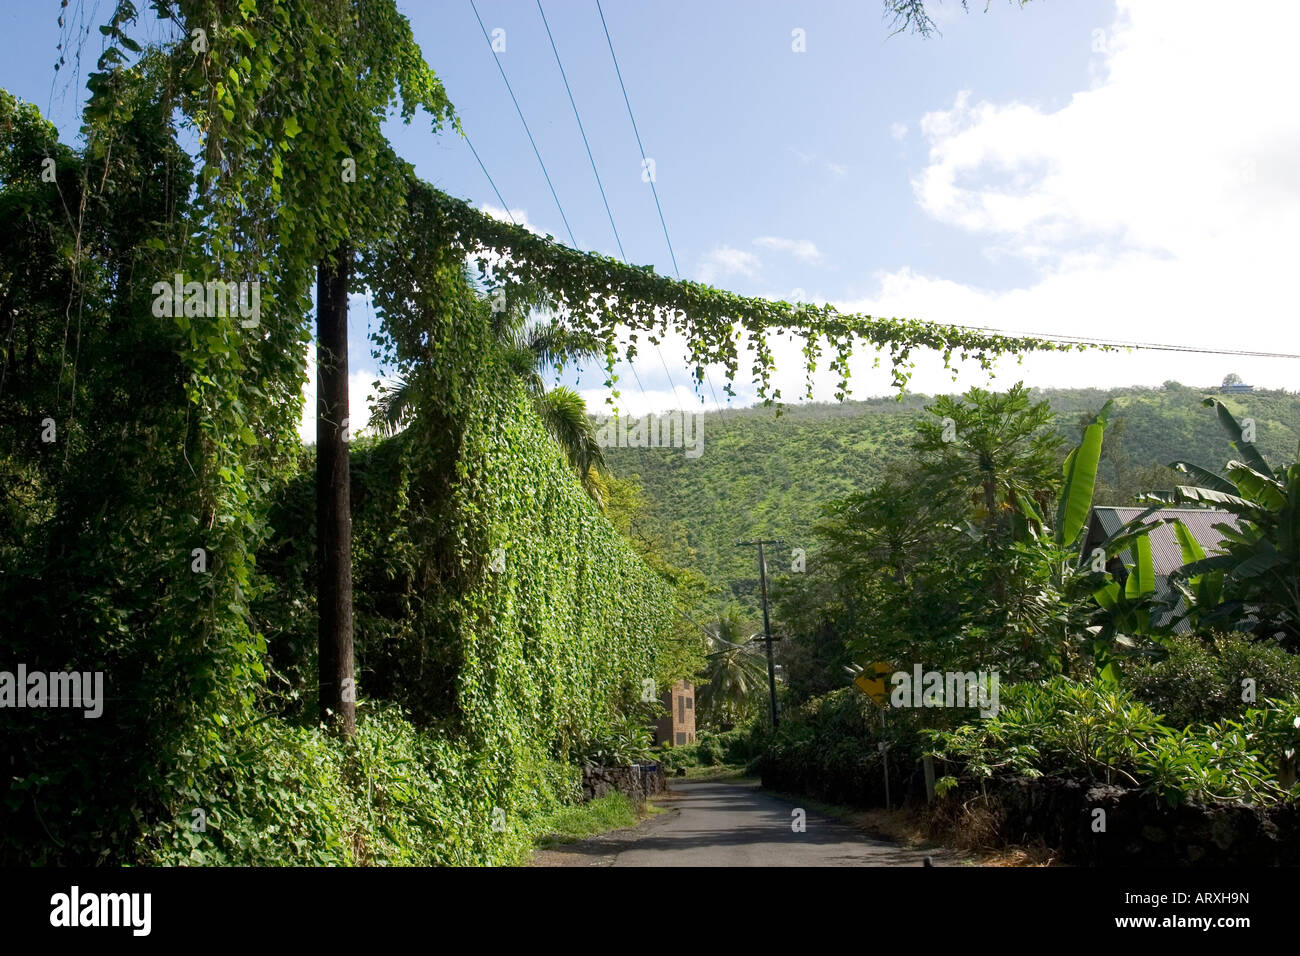 vines cover telephone pole and wires on rural big island street